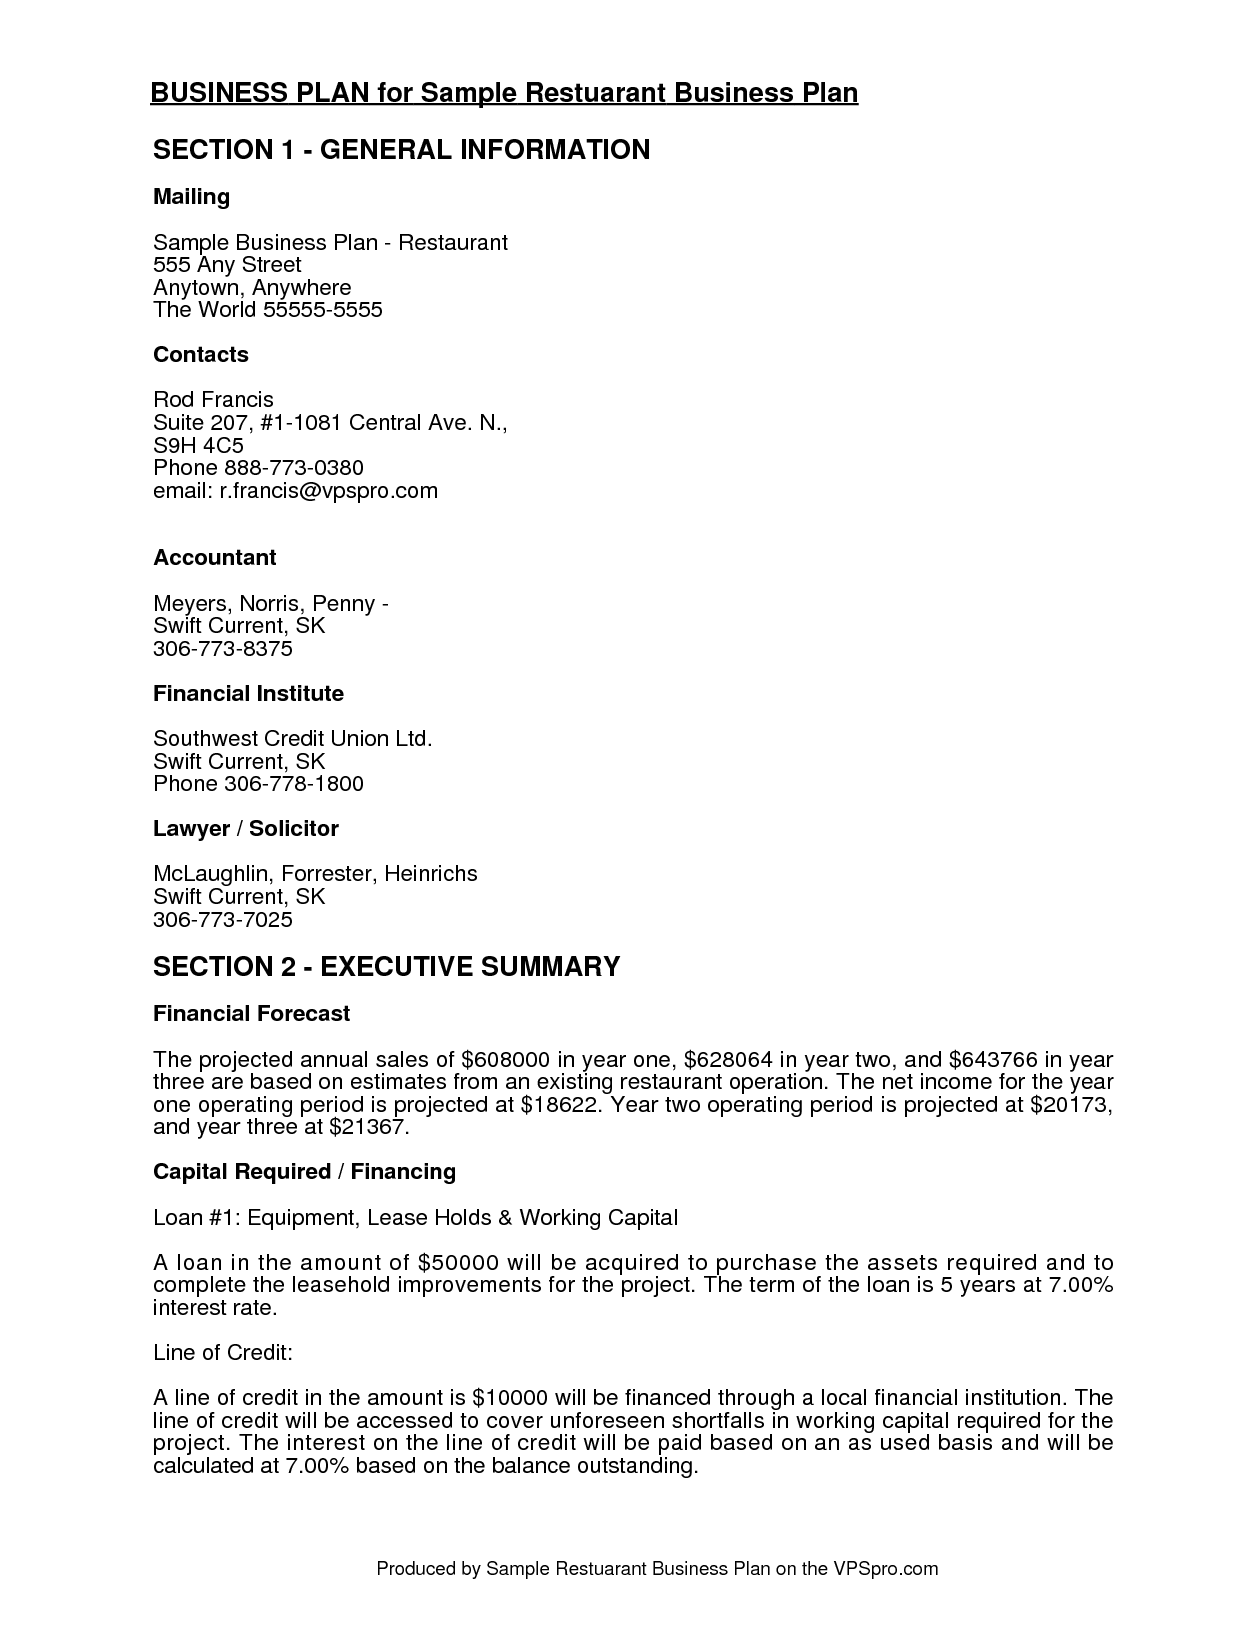 Free business plan structure 12 volt resume